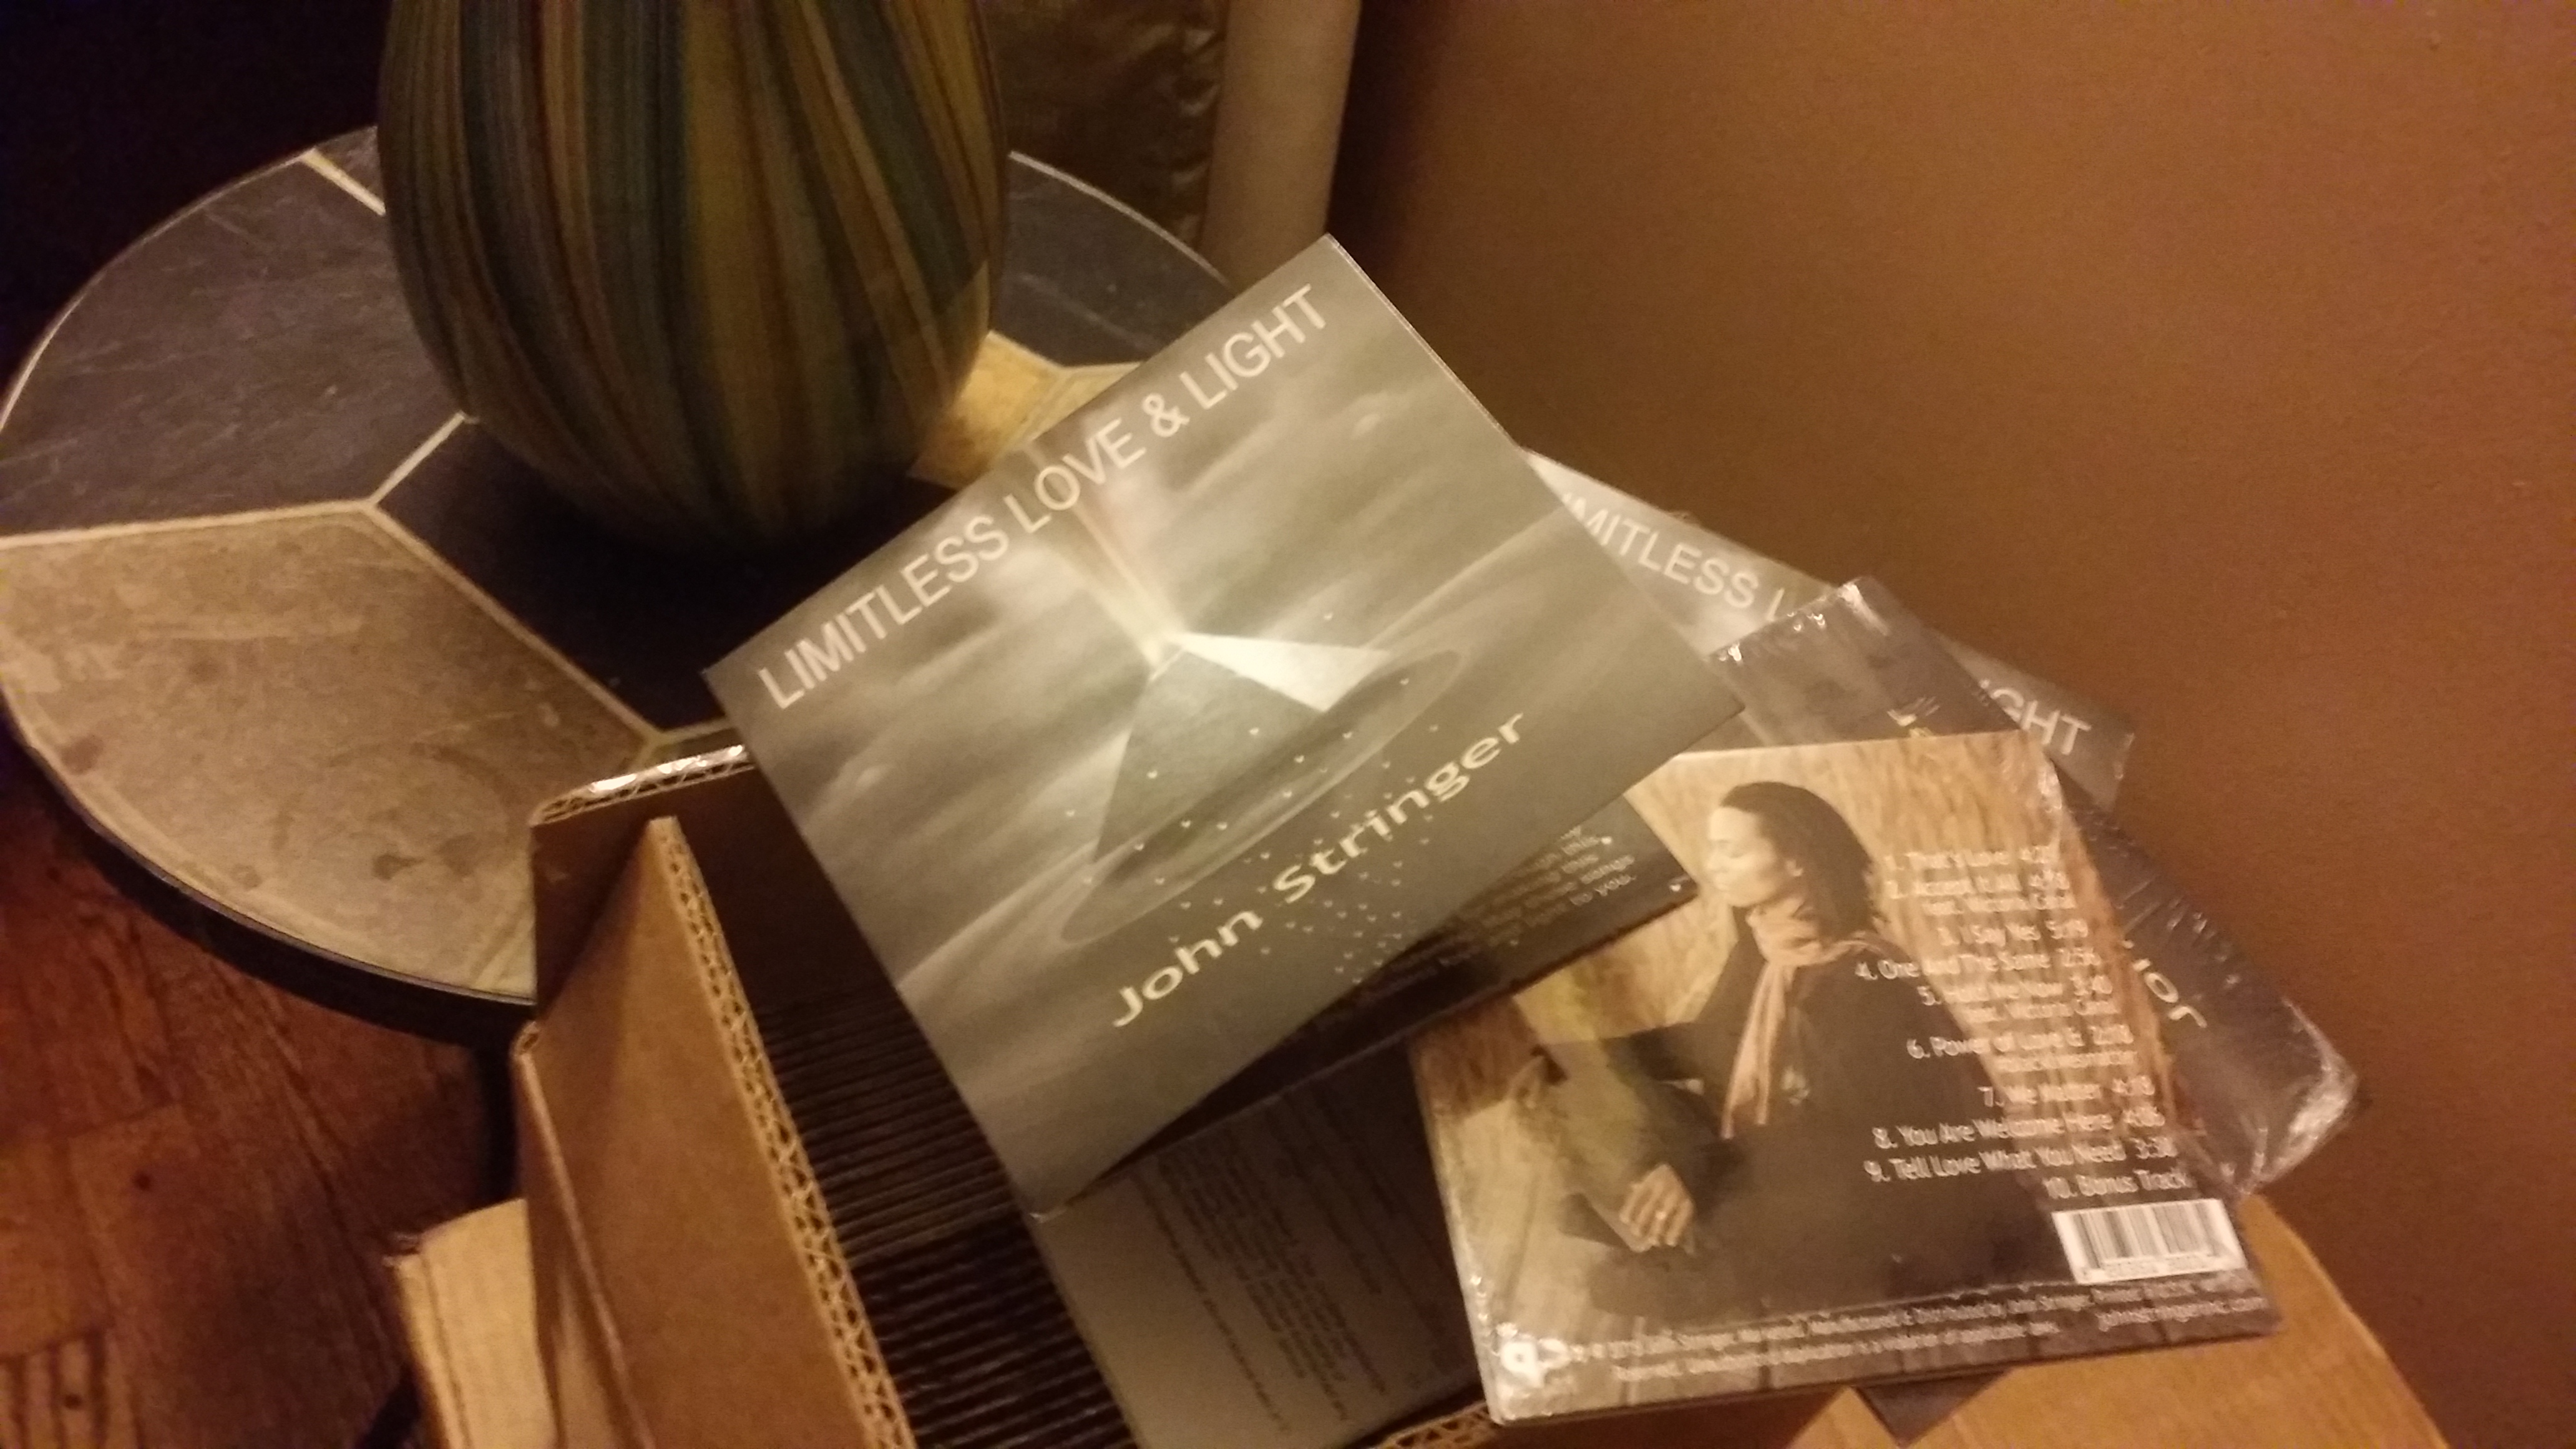 CDs Arrived, New Song release w/ Victoria Canal & Live Show Guest Performers